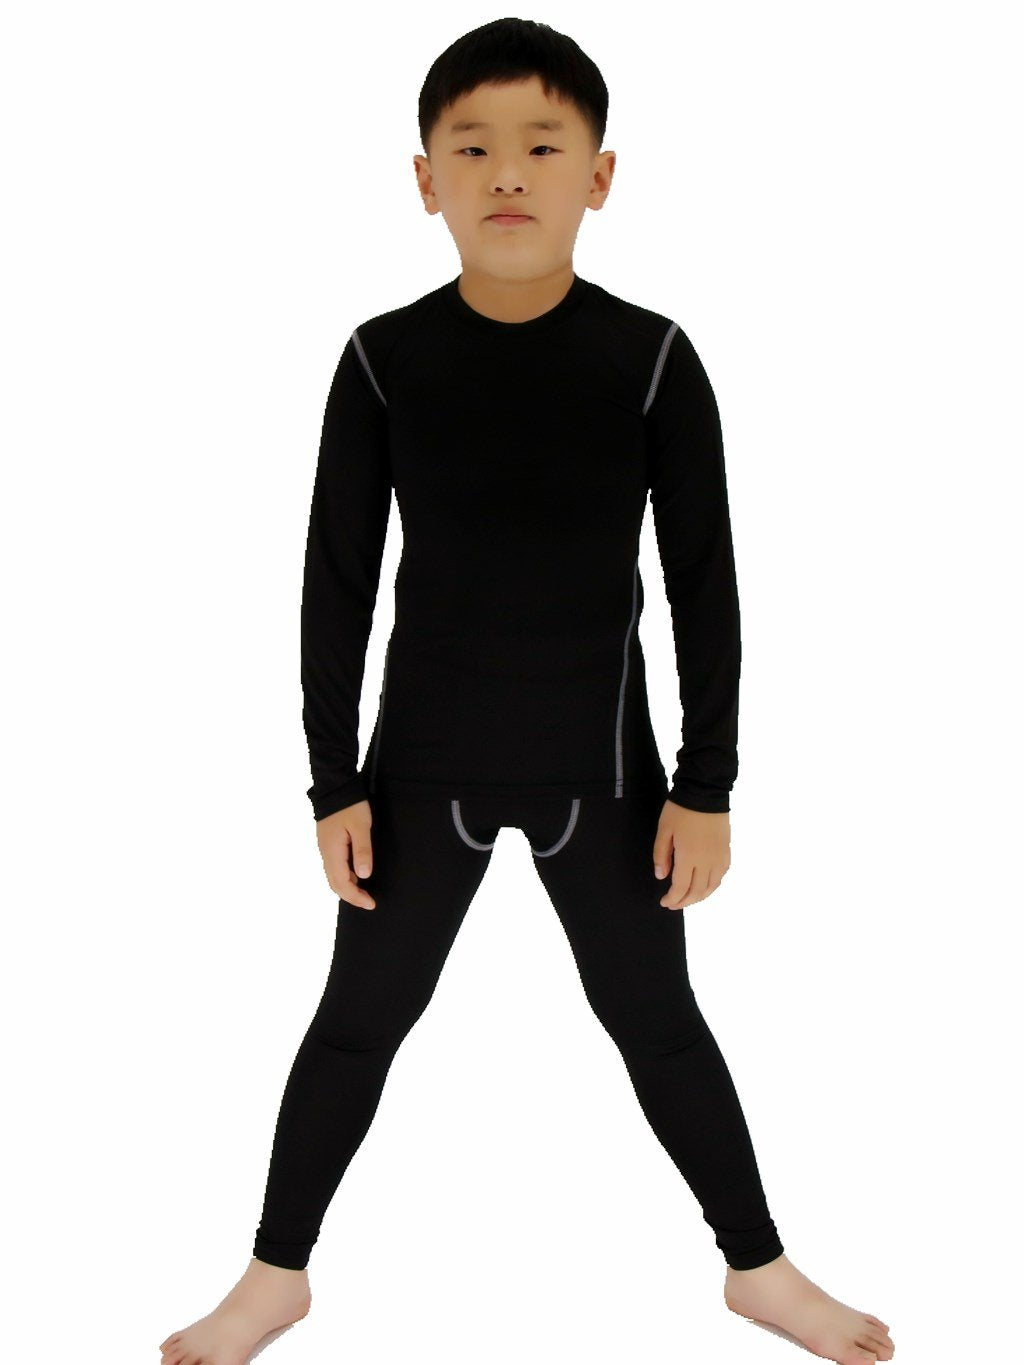 LANBAOSI Boys & Girls Long Sleeve Compression Shirts and Pant 2 PCS Set, Black,more colors and sizes available - Ctfitnesswear